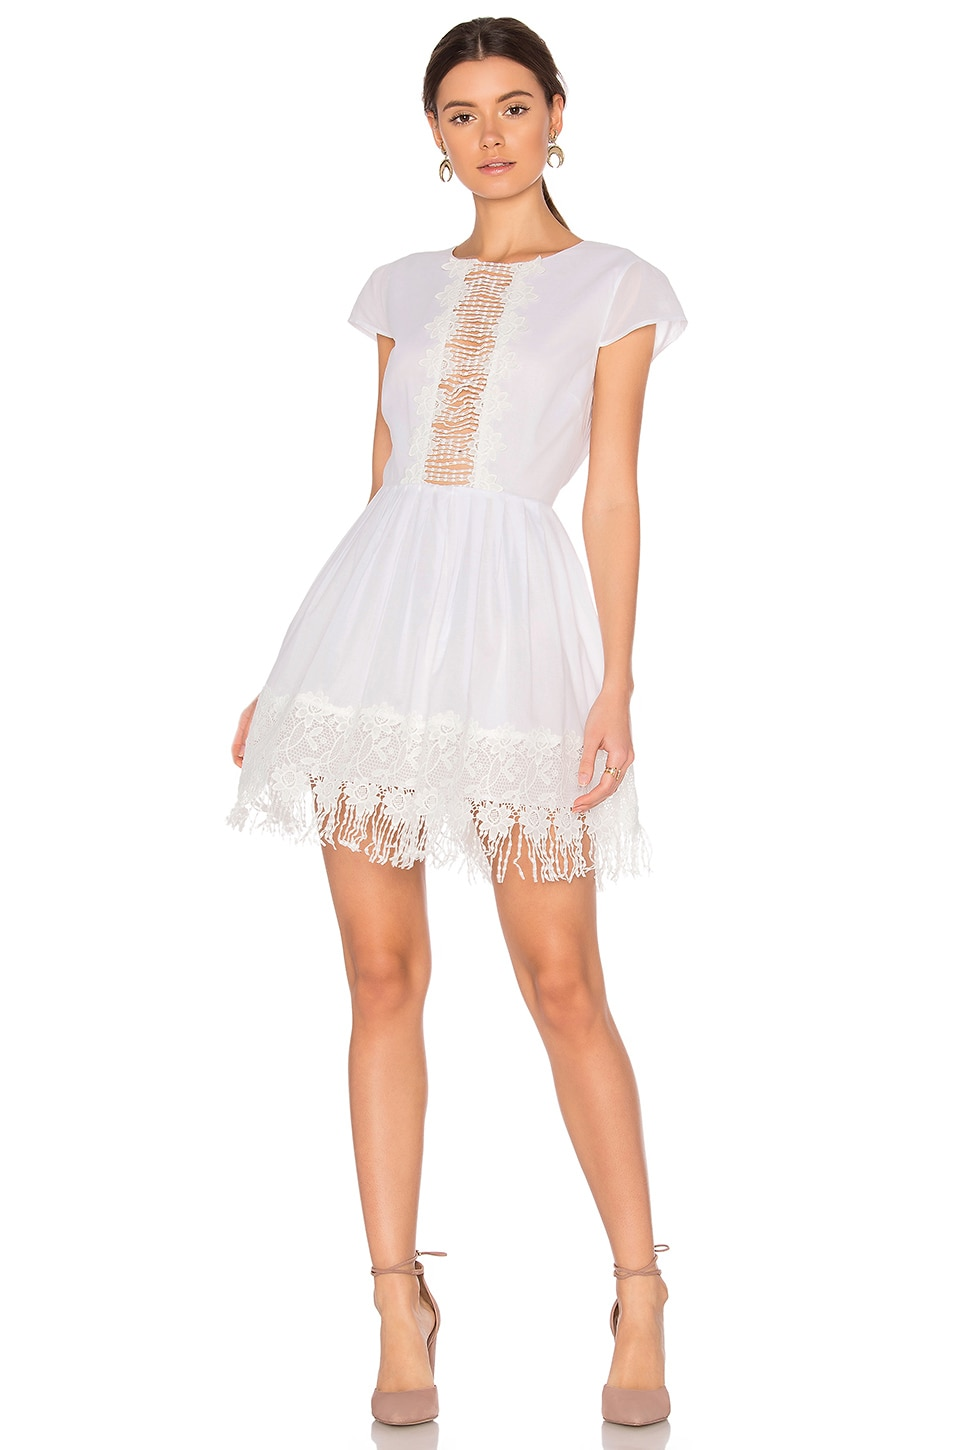 MAJORELLE Liberty Dress in Ivory